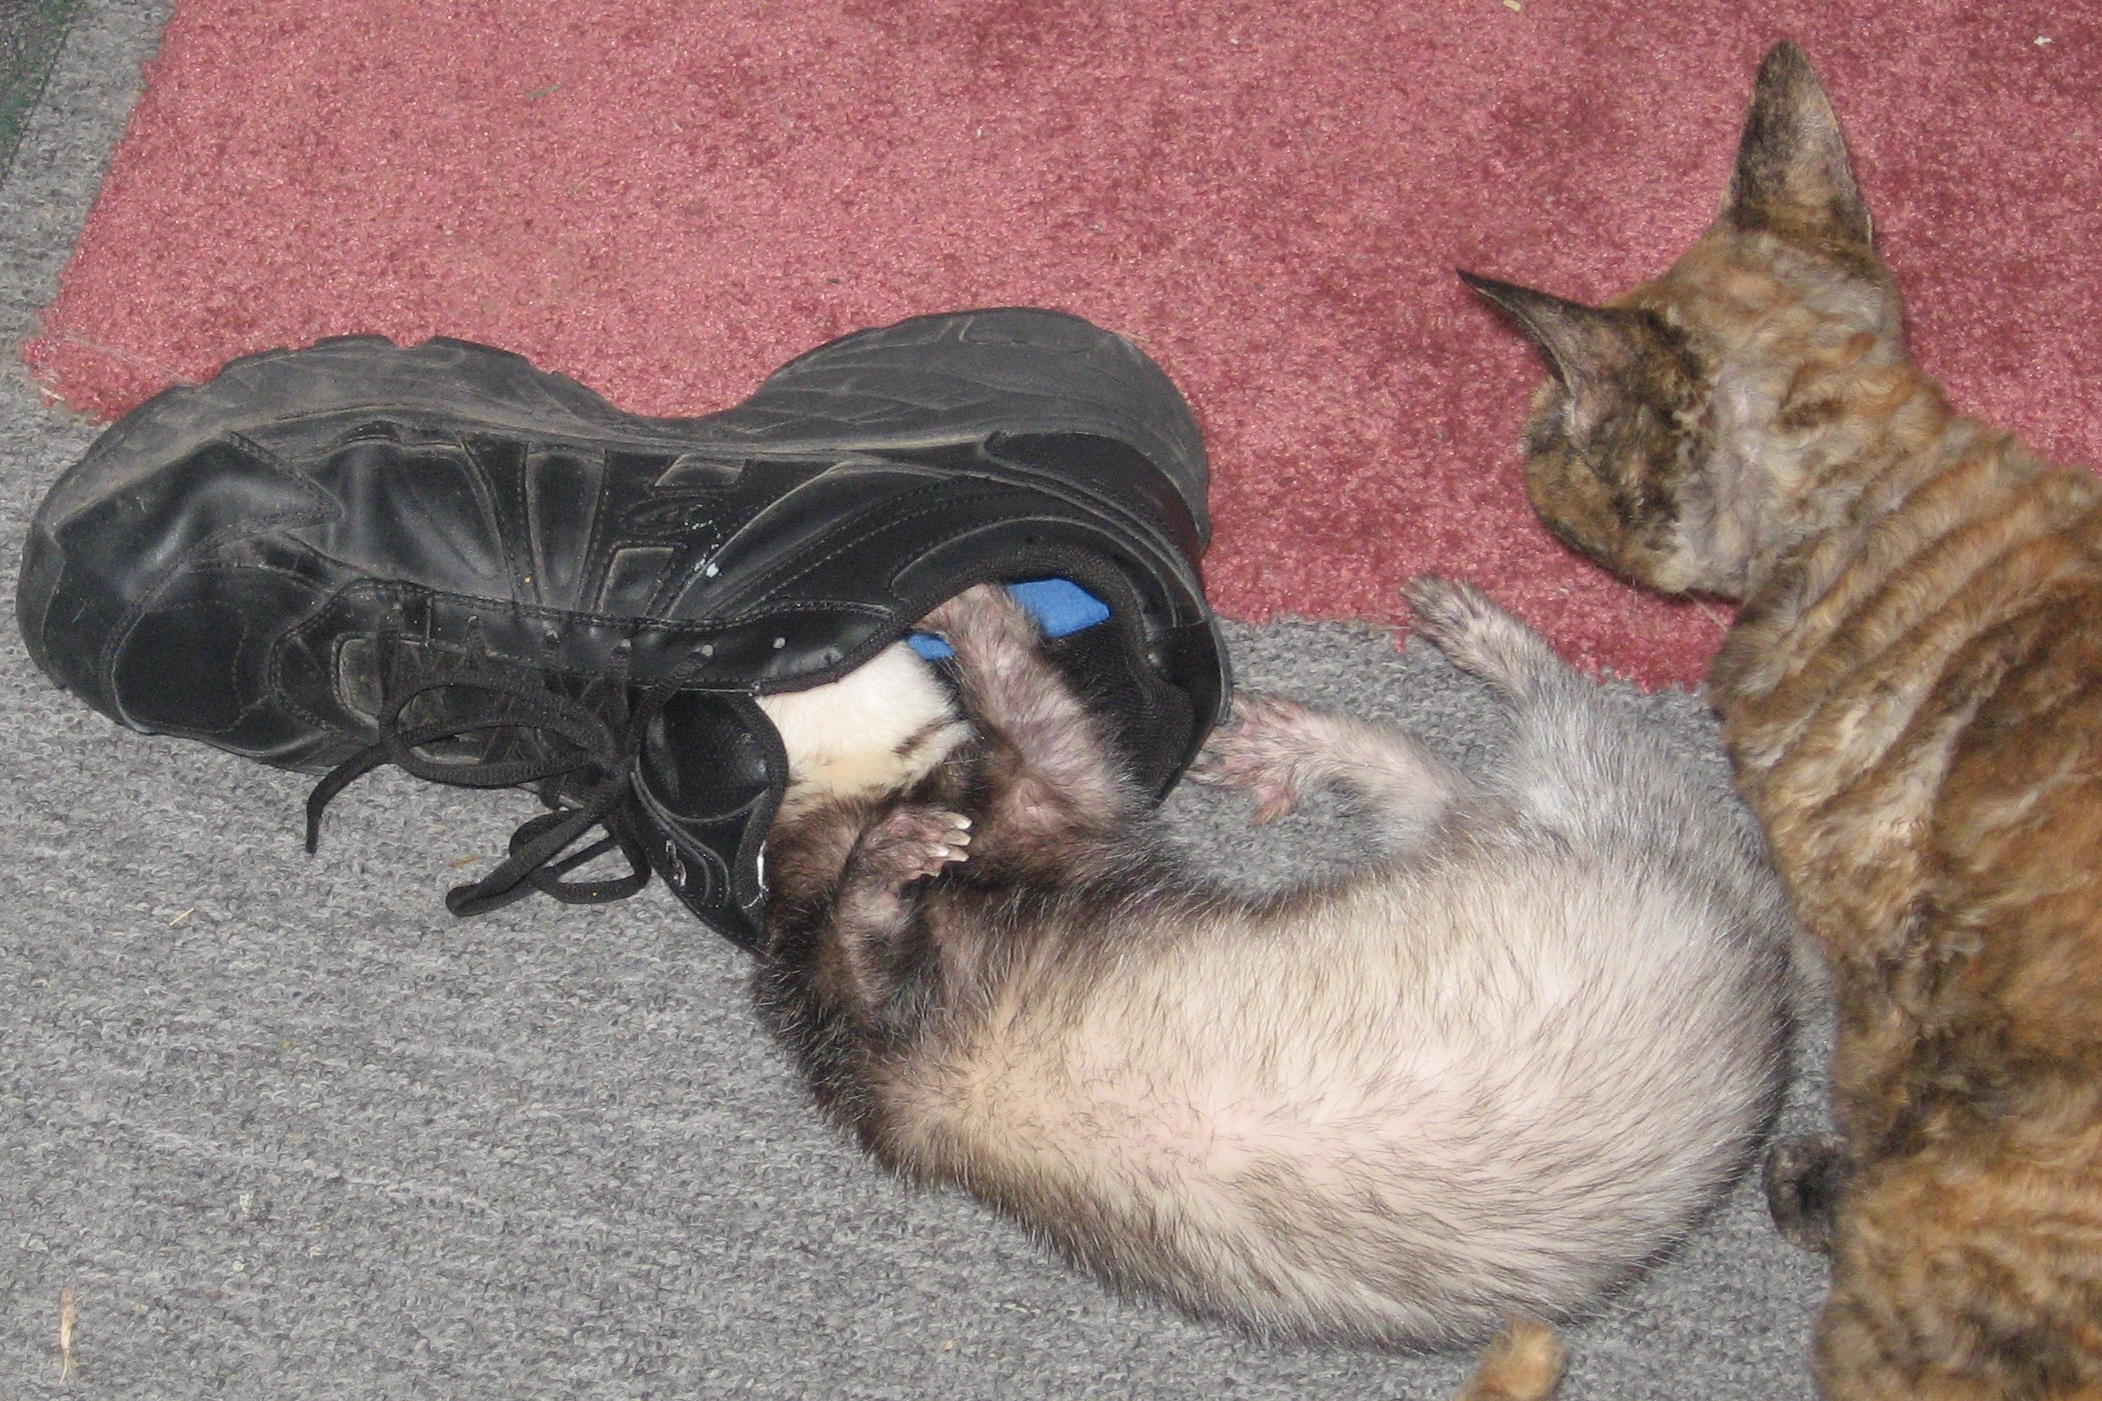 Duke can't resist a smelly shoe. His cat friend wonders what all the fuss is about.